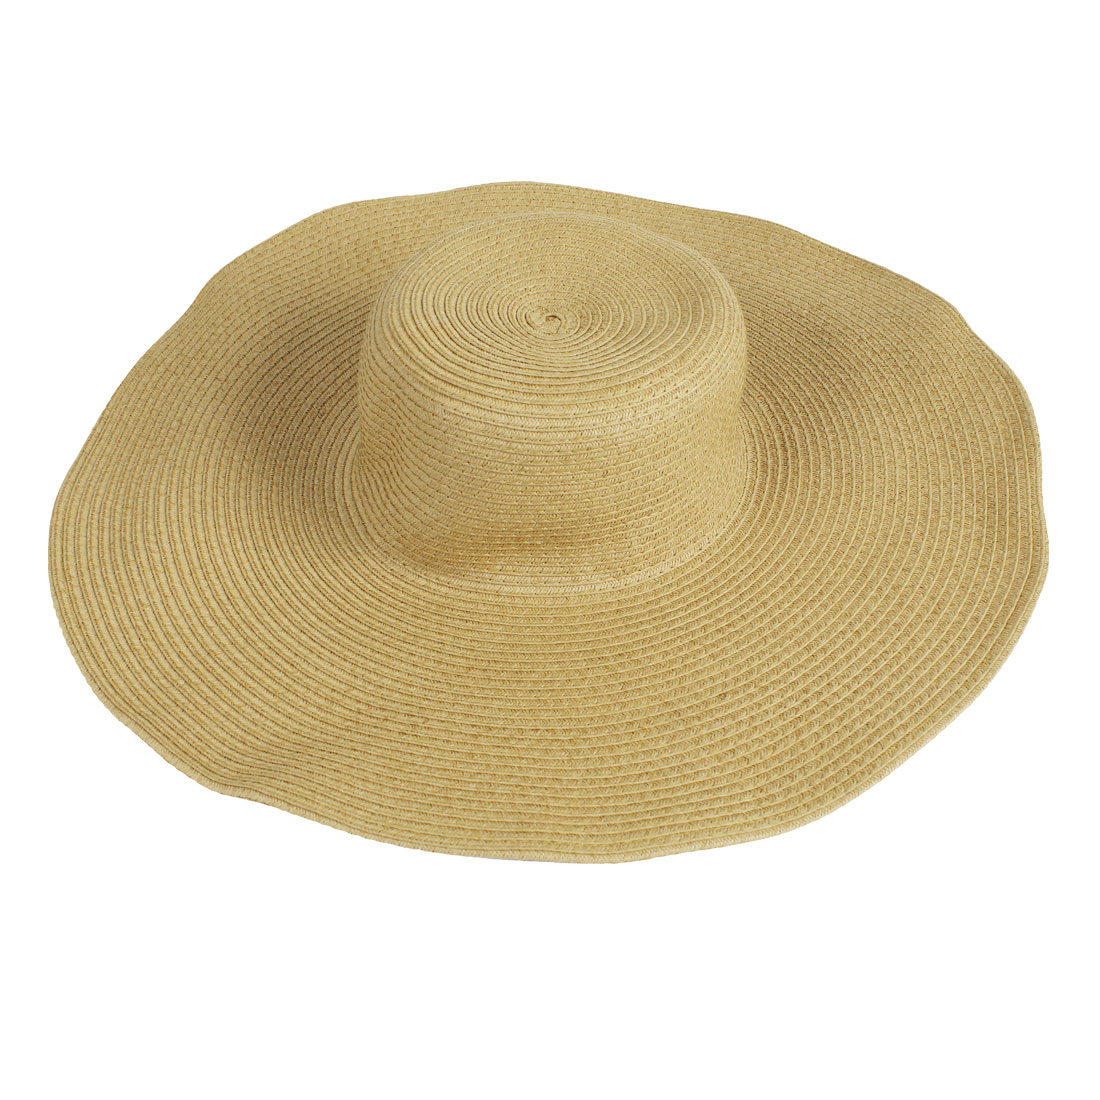 Lady Outdoor 14.5cm Width Brim Visor Hat Beach Summer Cap Dark Khaki